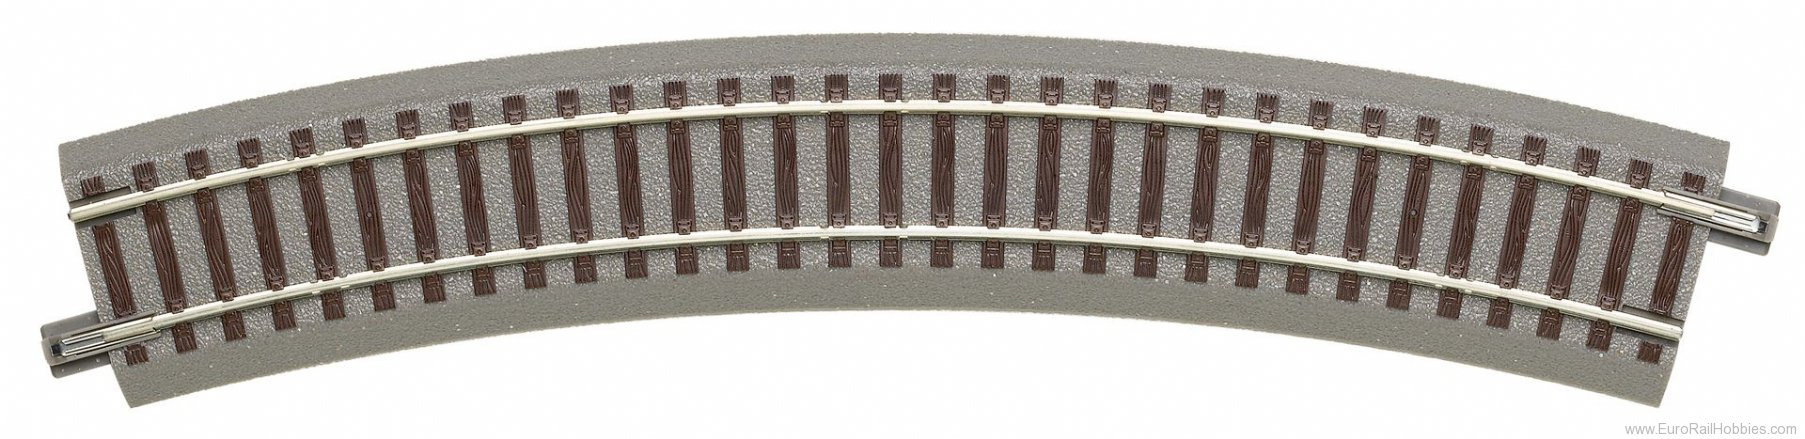 Roco 61123 geoLINE Curved Track R3